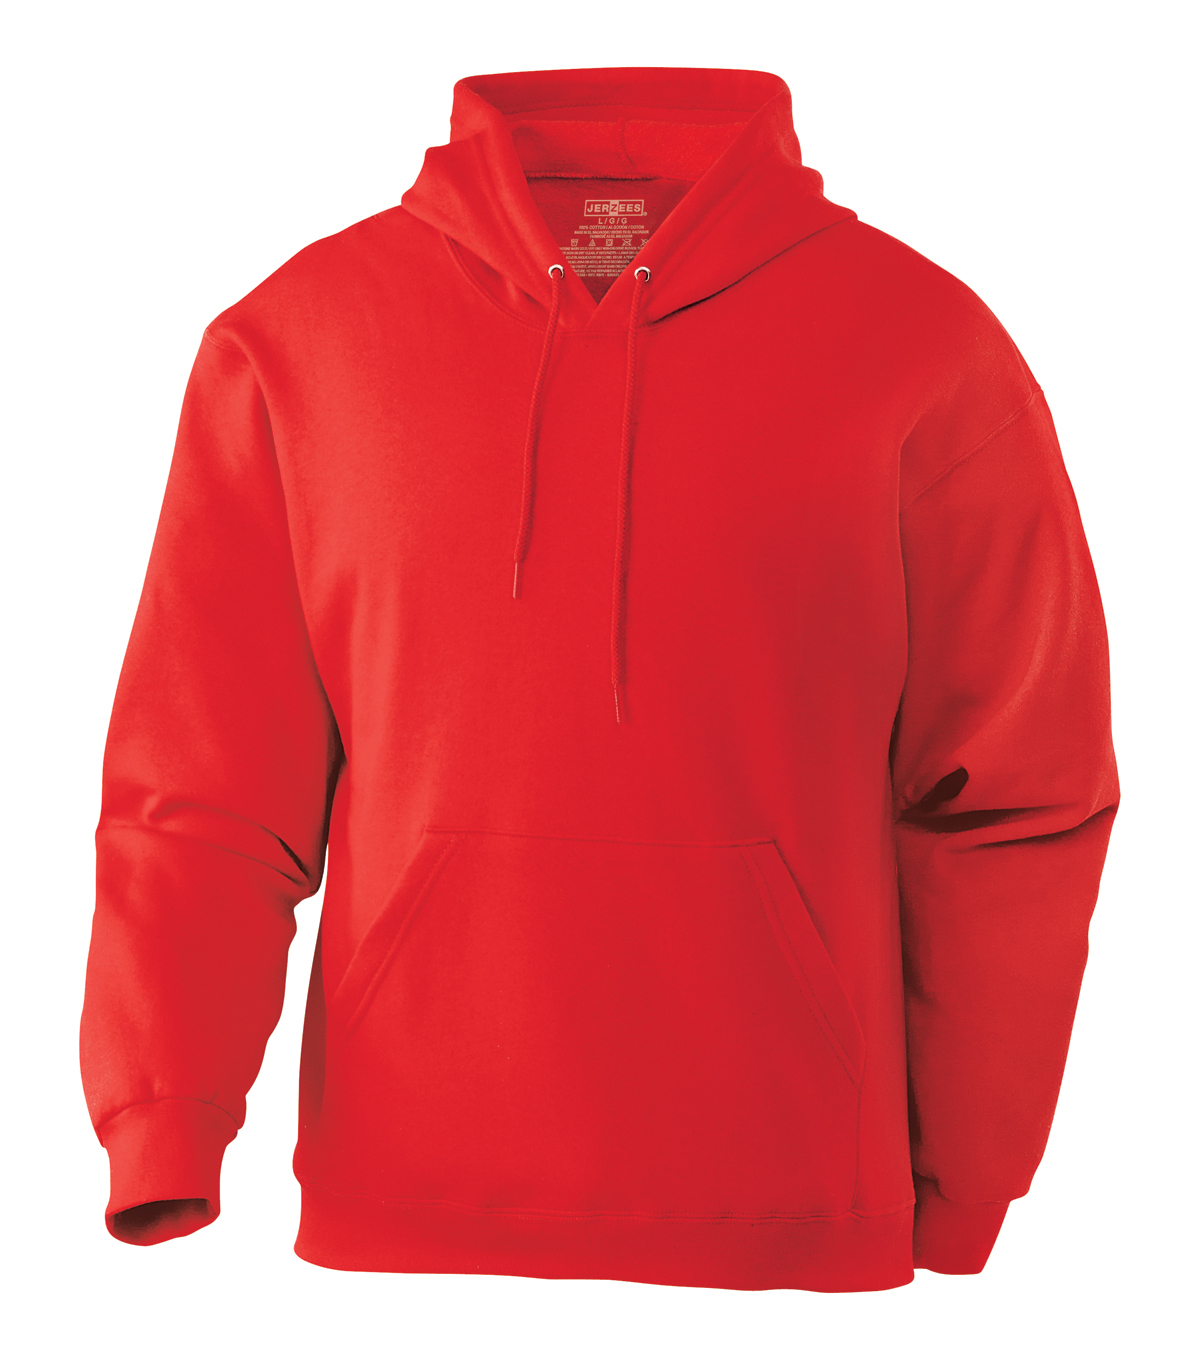 True Red Hooded Sweatshirt Xl